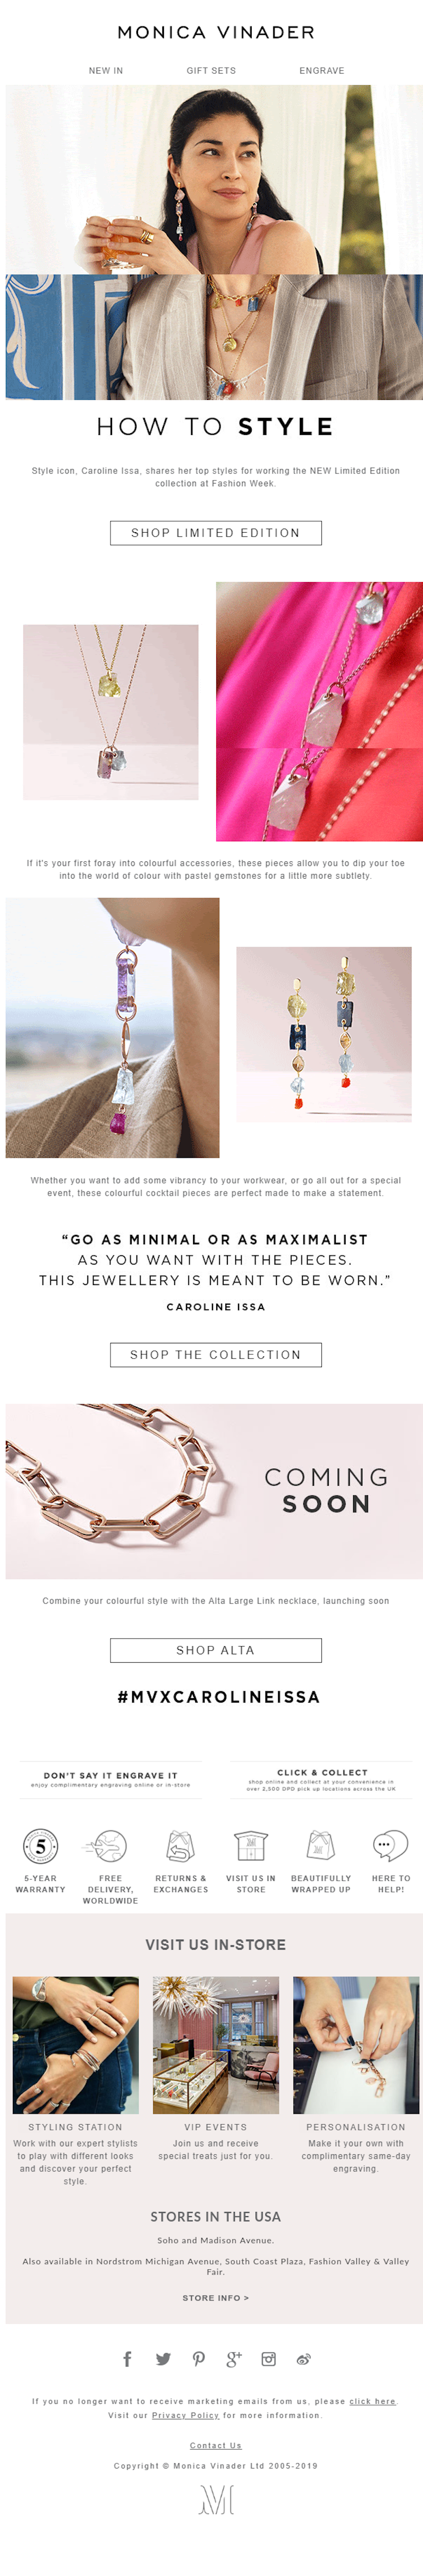 fashion email marketing ideas